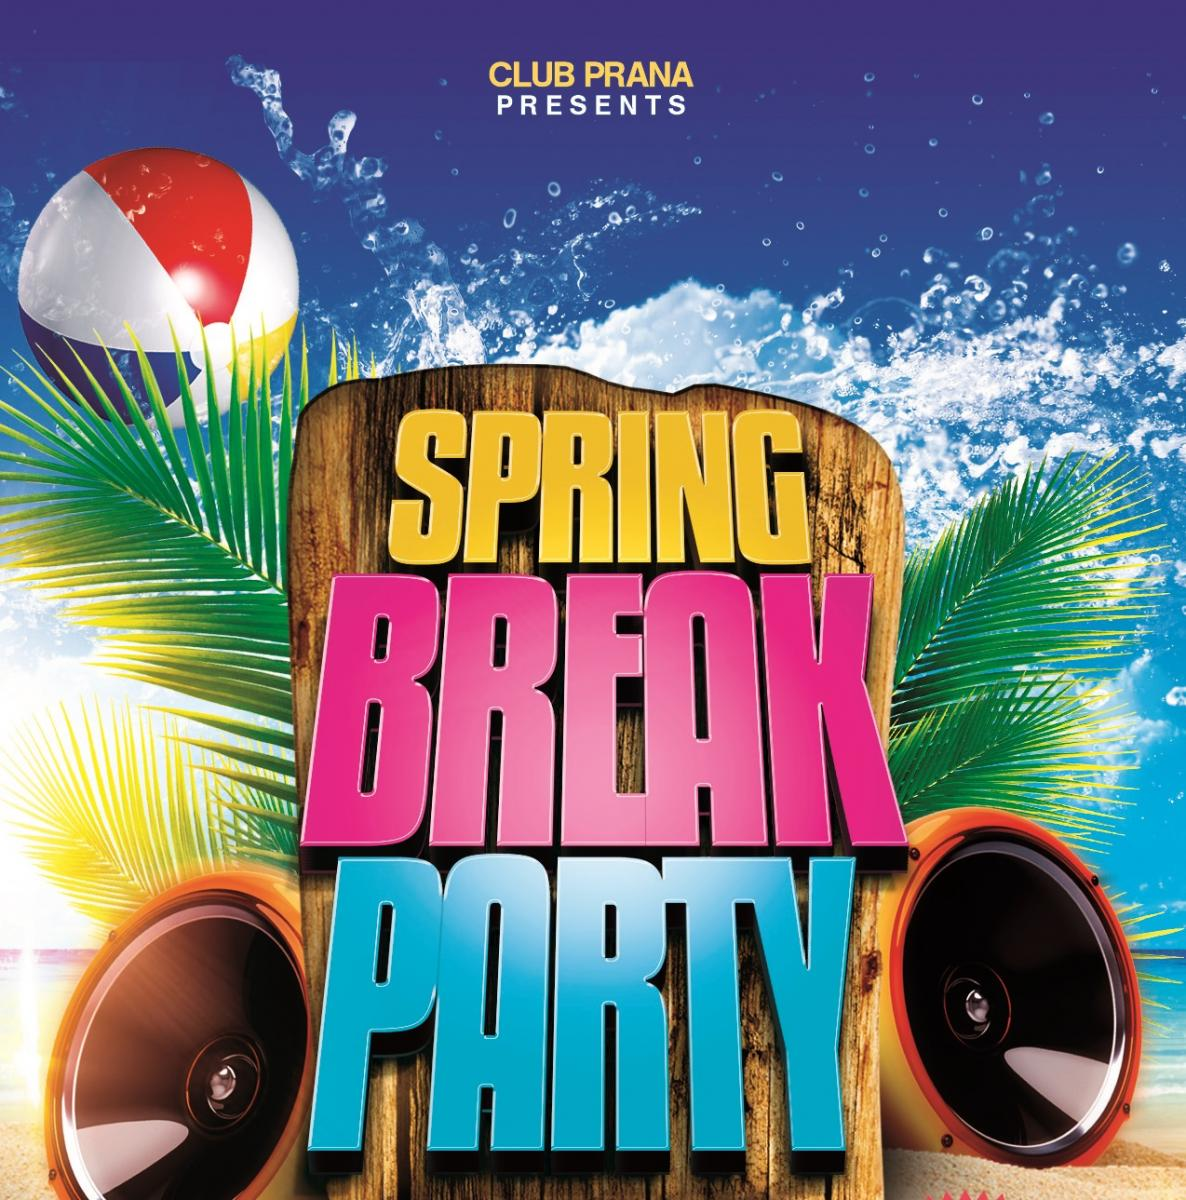 Spring Break Tuesday party at Club Prana